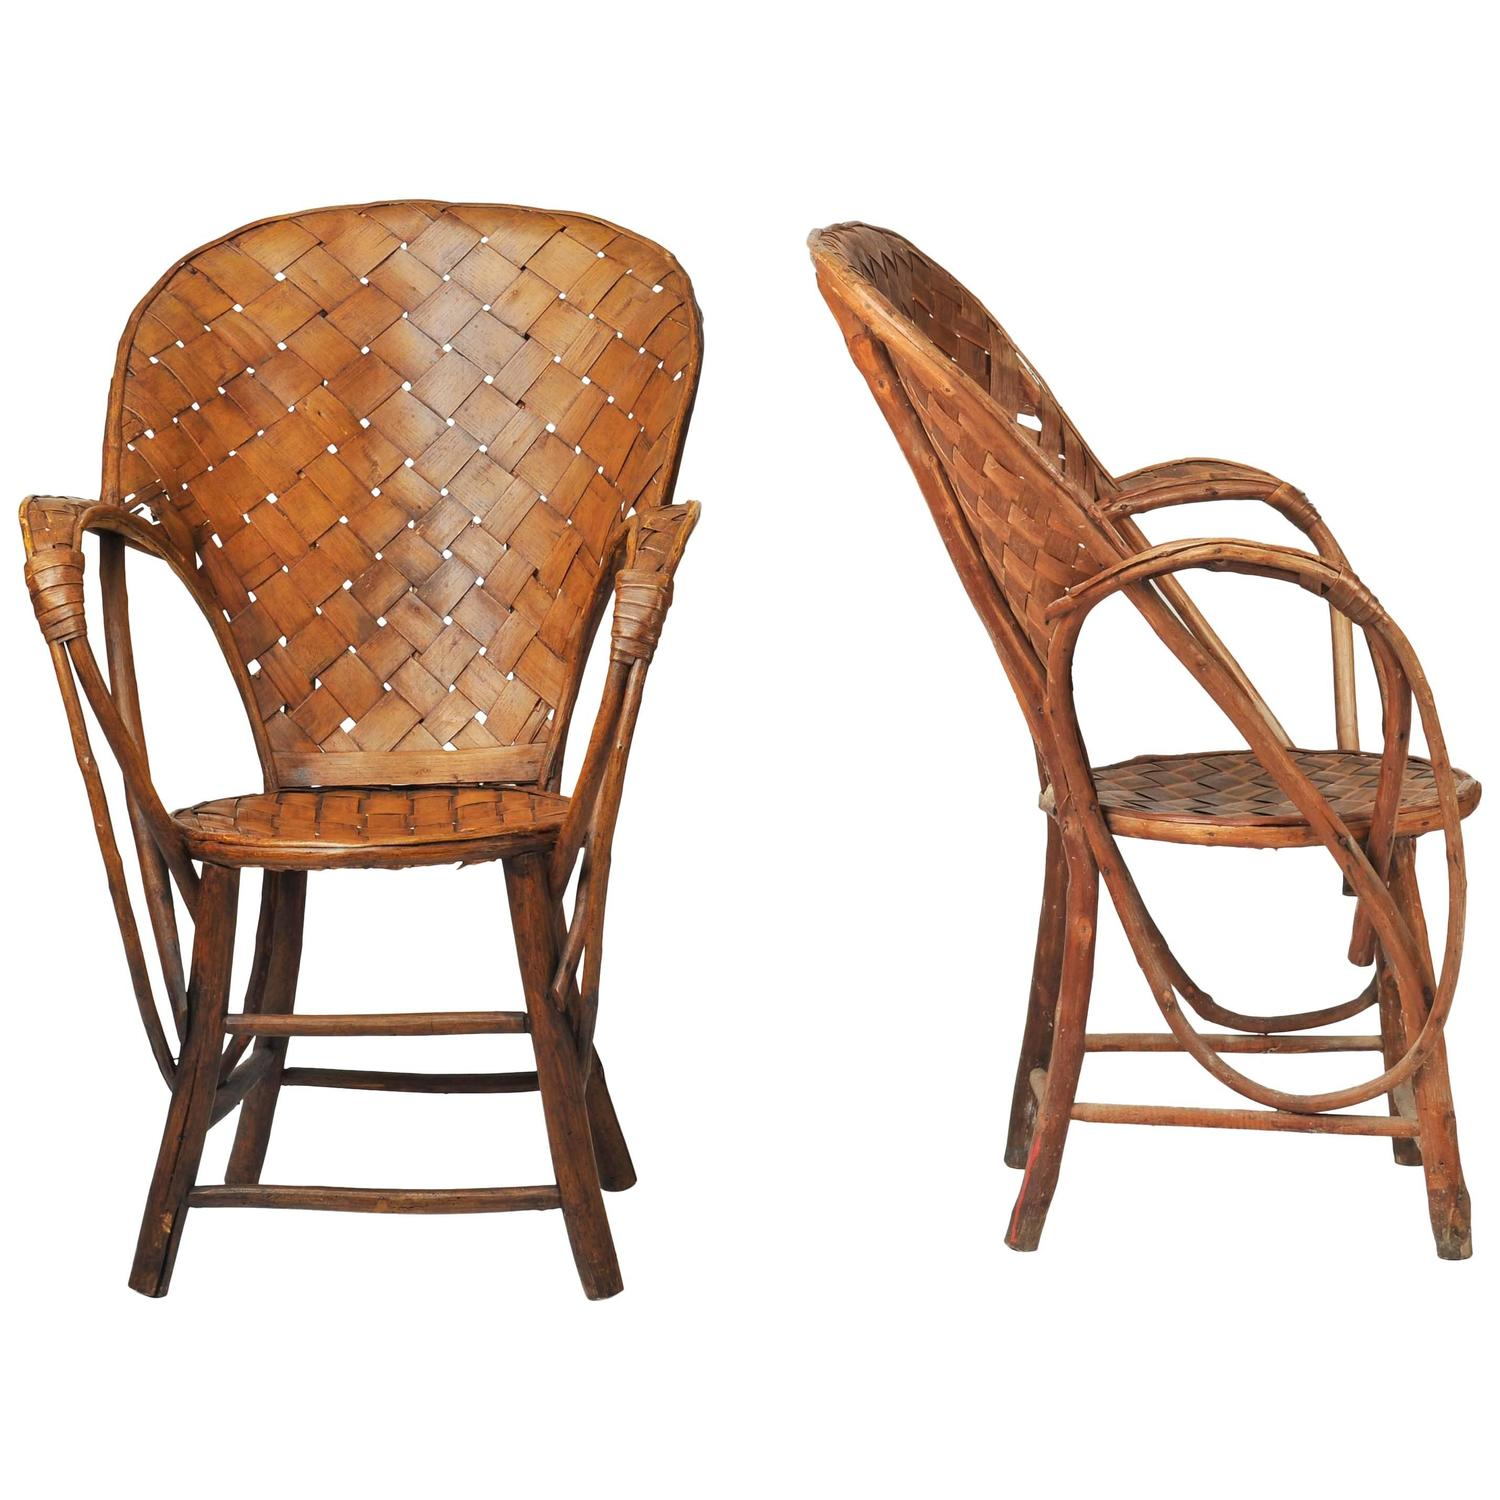 Pair of Garden Chairs by Charlotte Perriand For Sale at 1stdibs